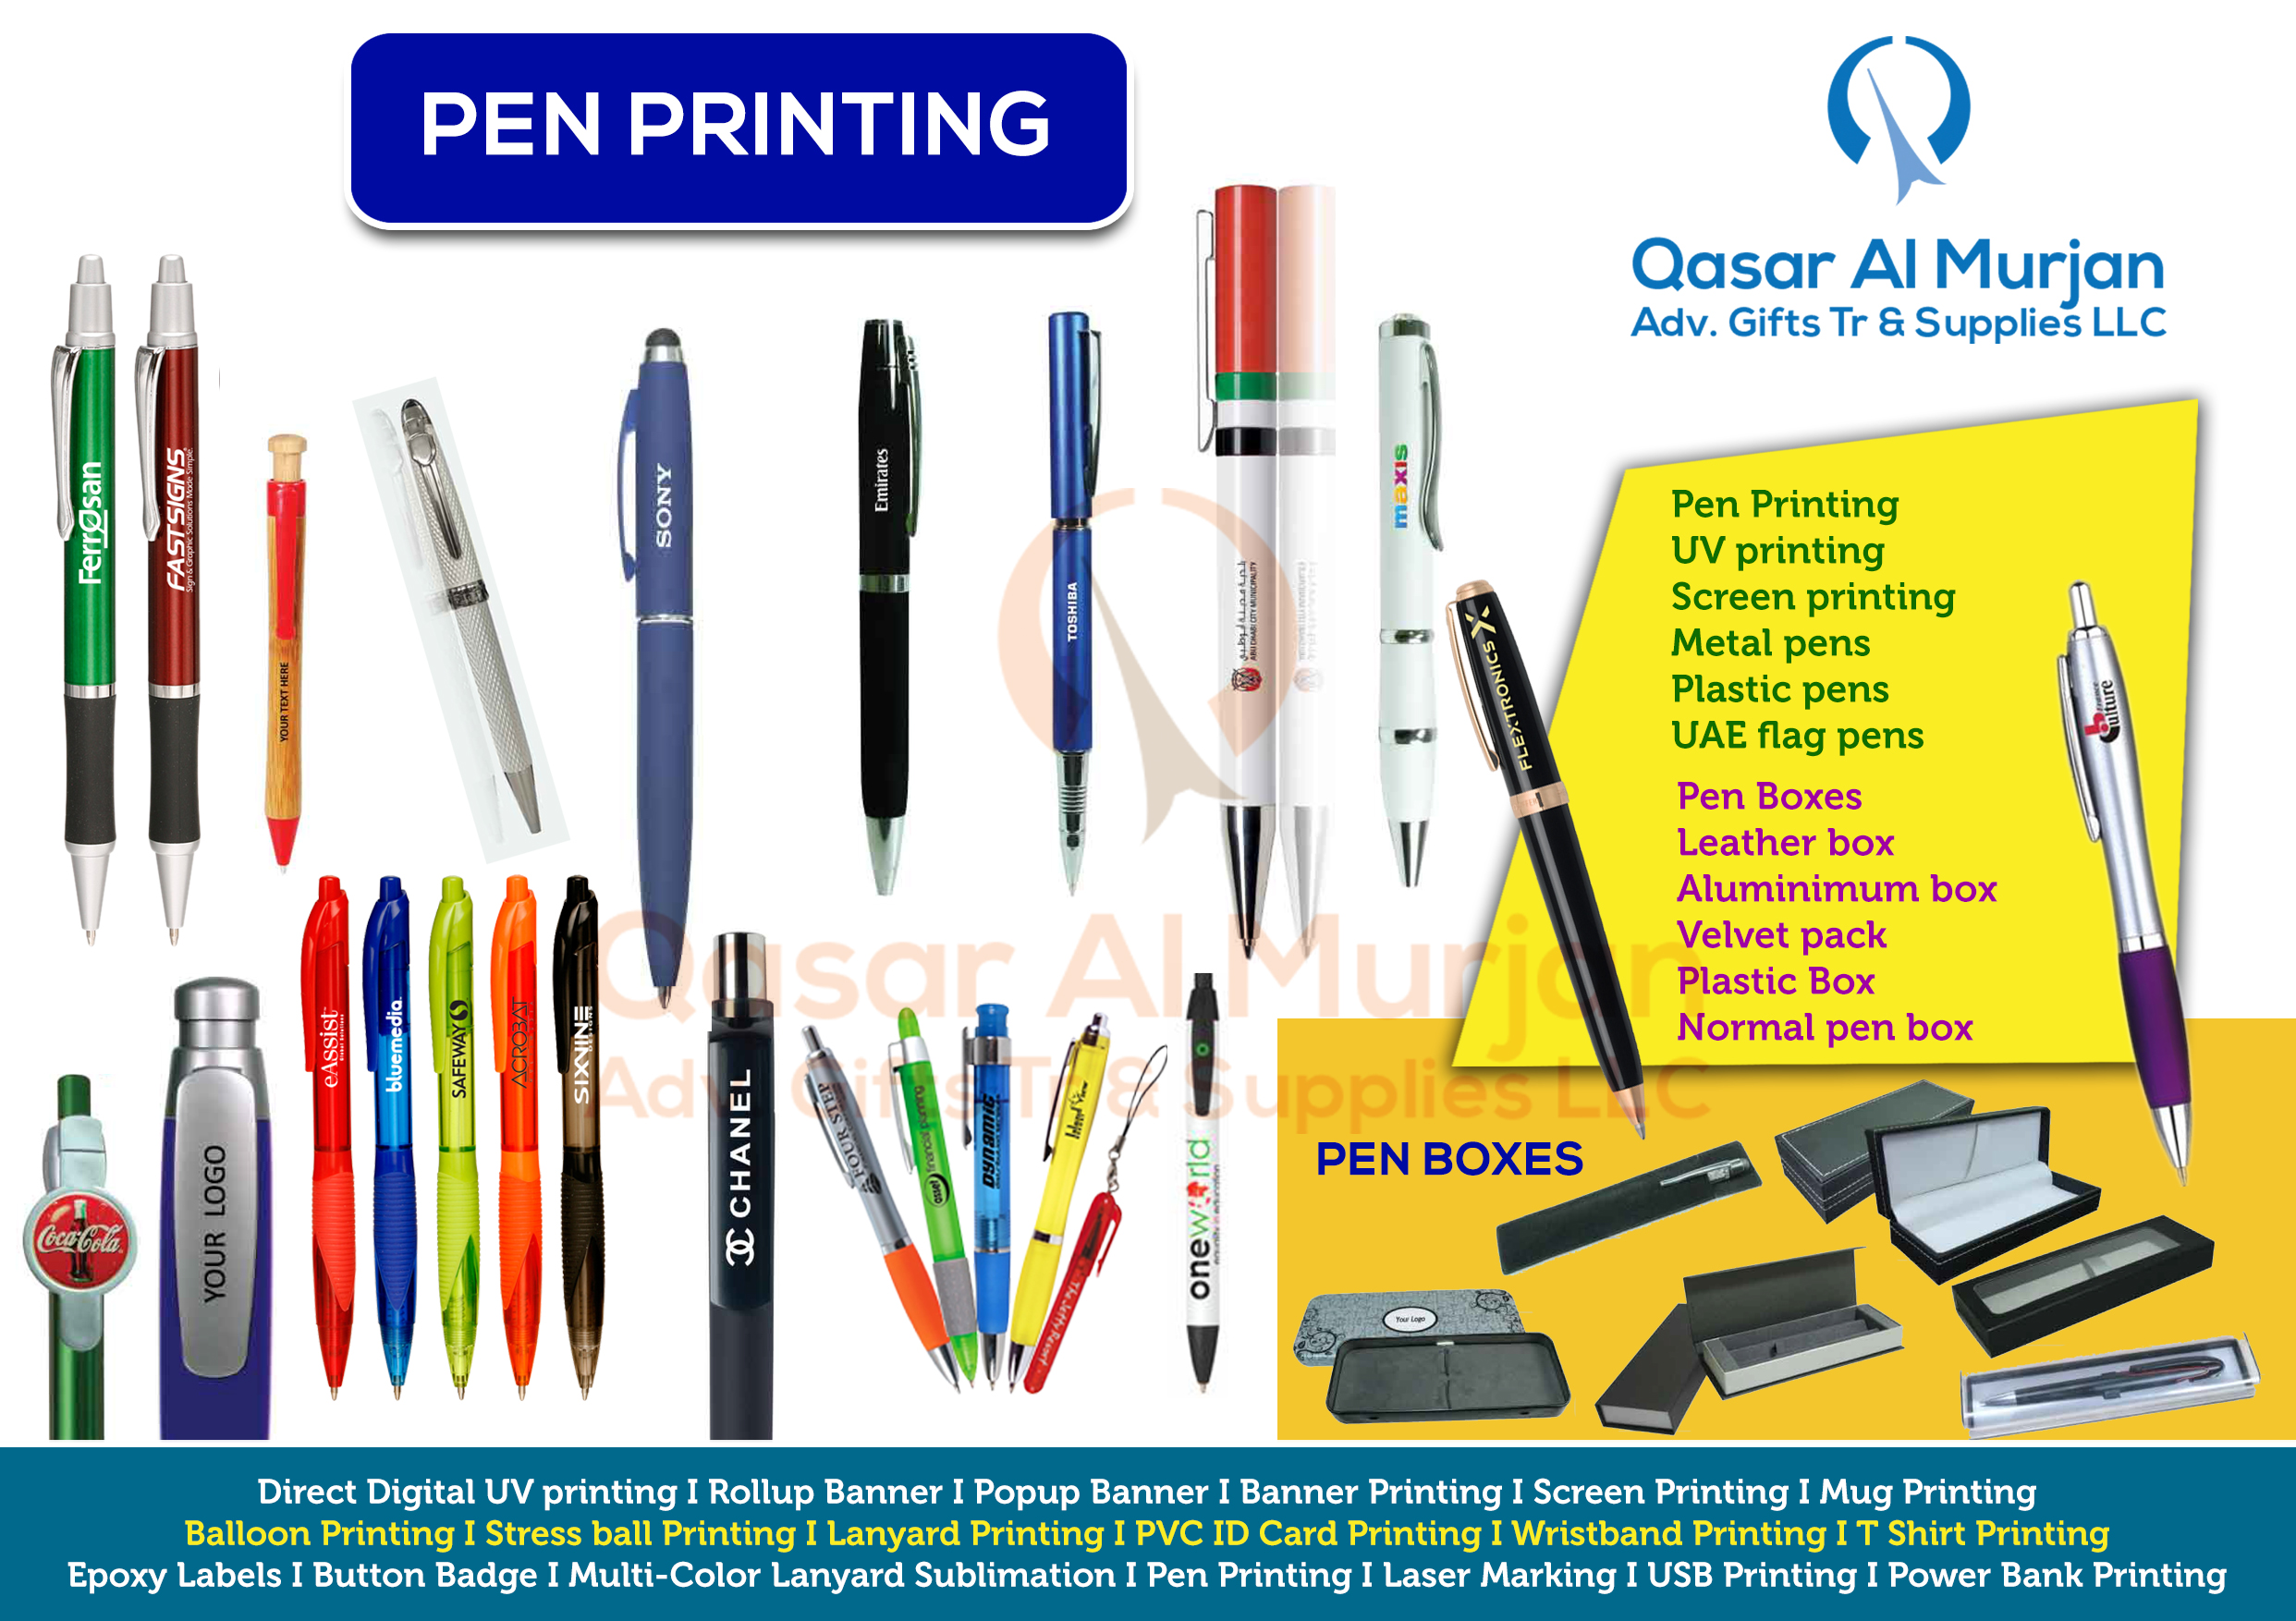 National day gift items in dubai 45th uae national day gift items pen printing stopboris Choice Image